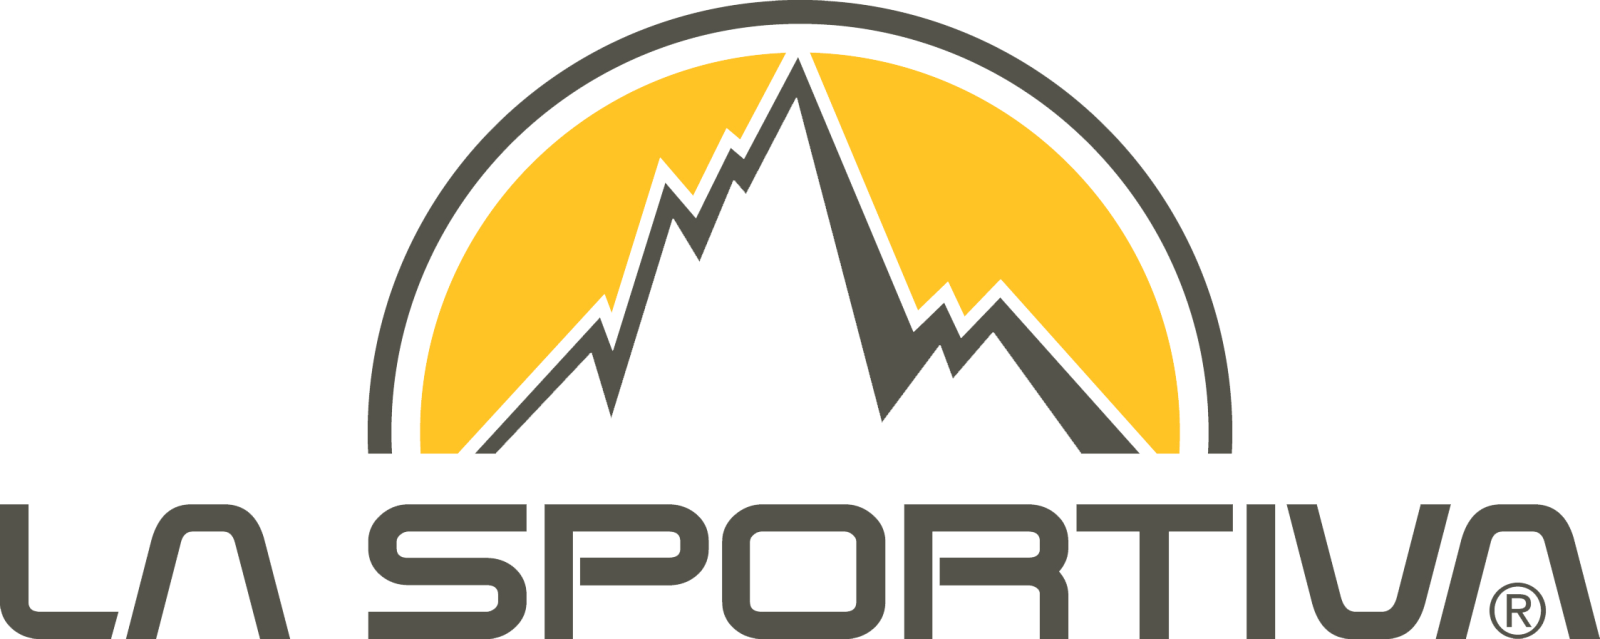 La-Sportiva-06-logo_recommended1.png